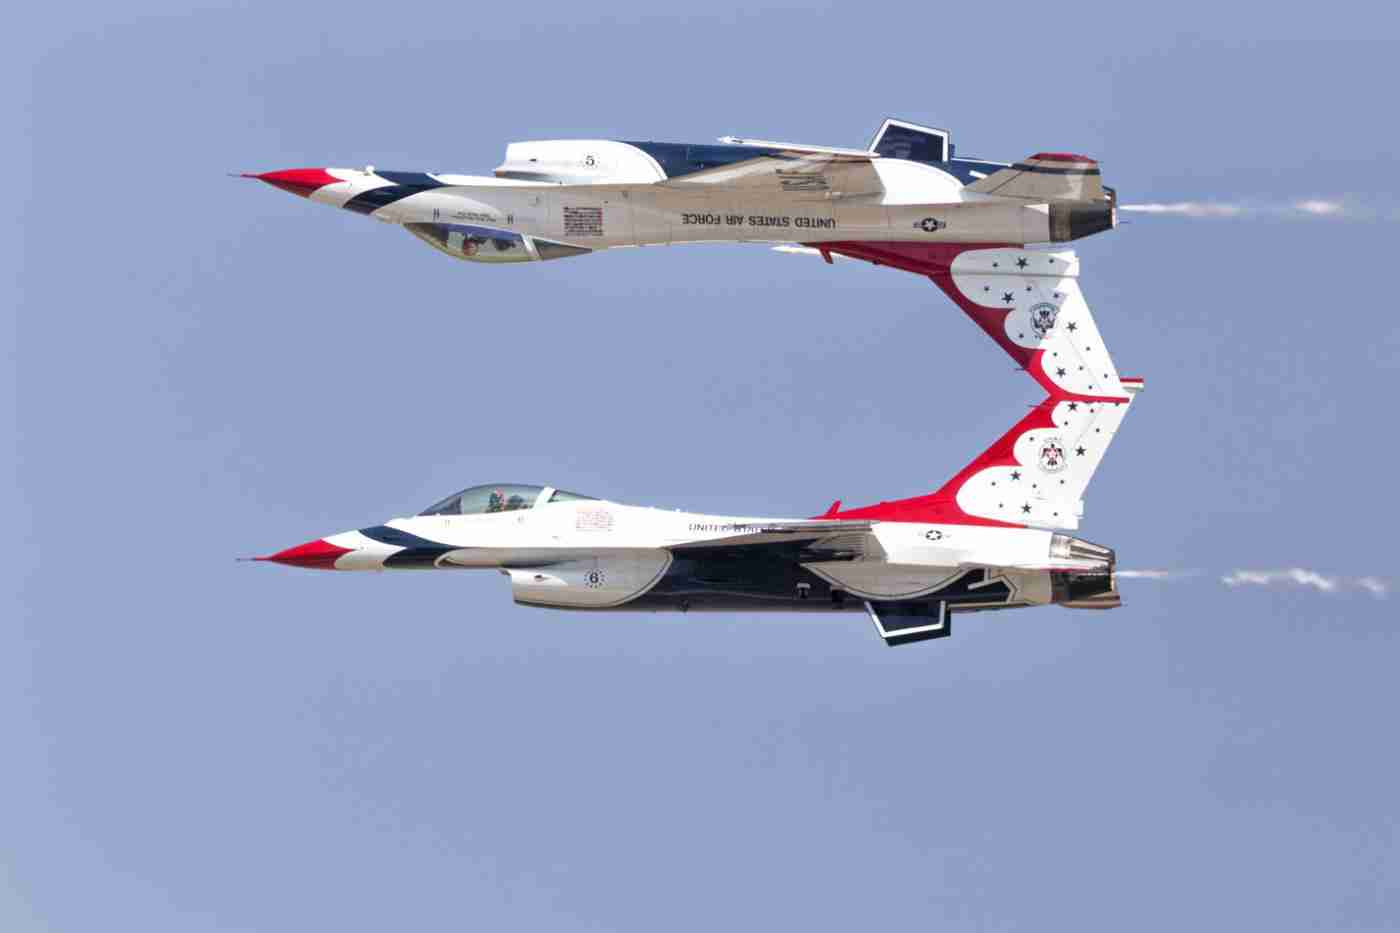 Air Force Thunderbird F-16s in Calypso Pass Formation